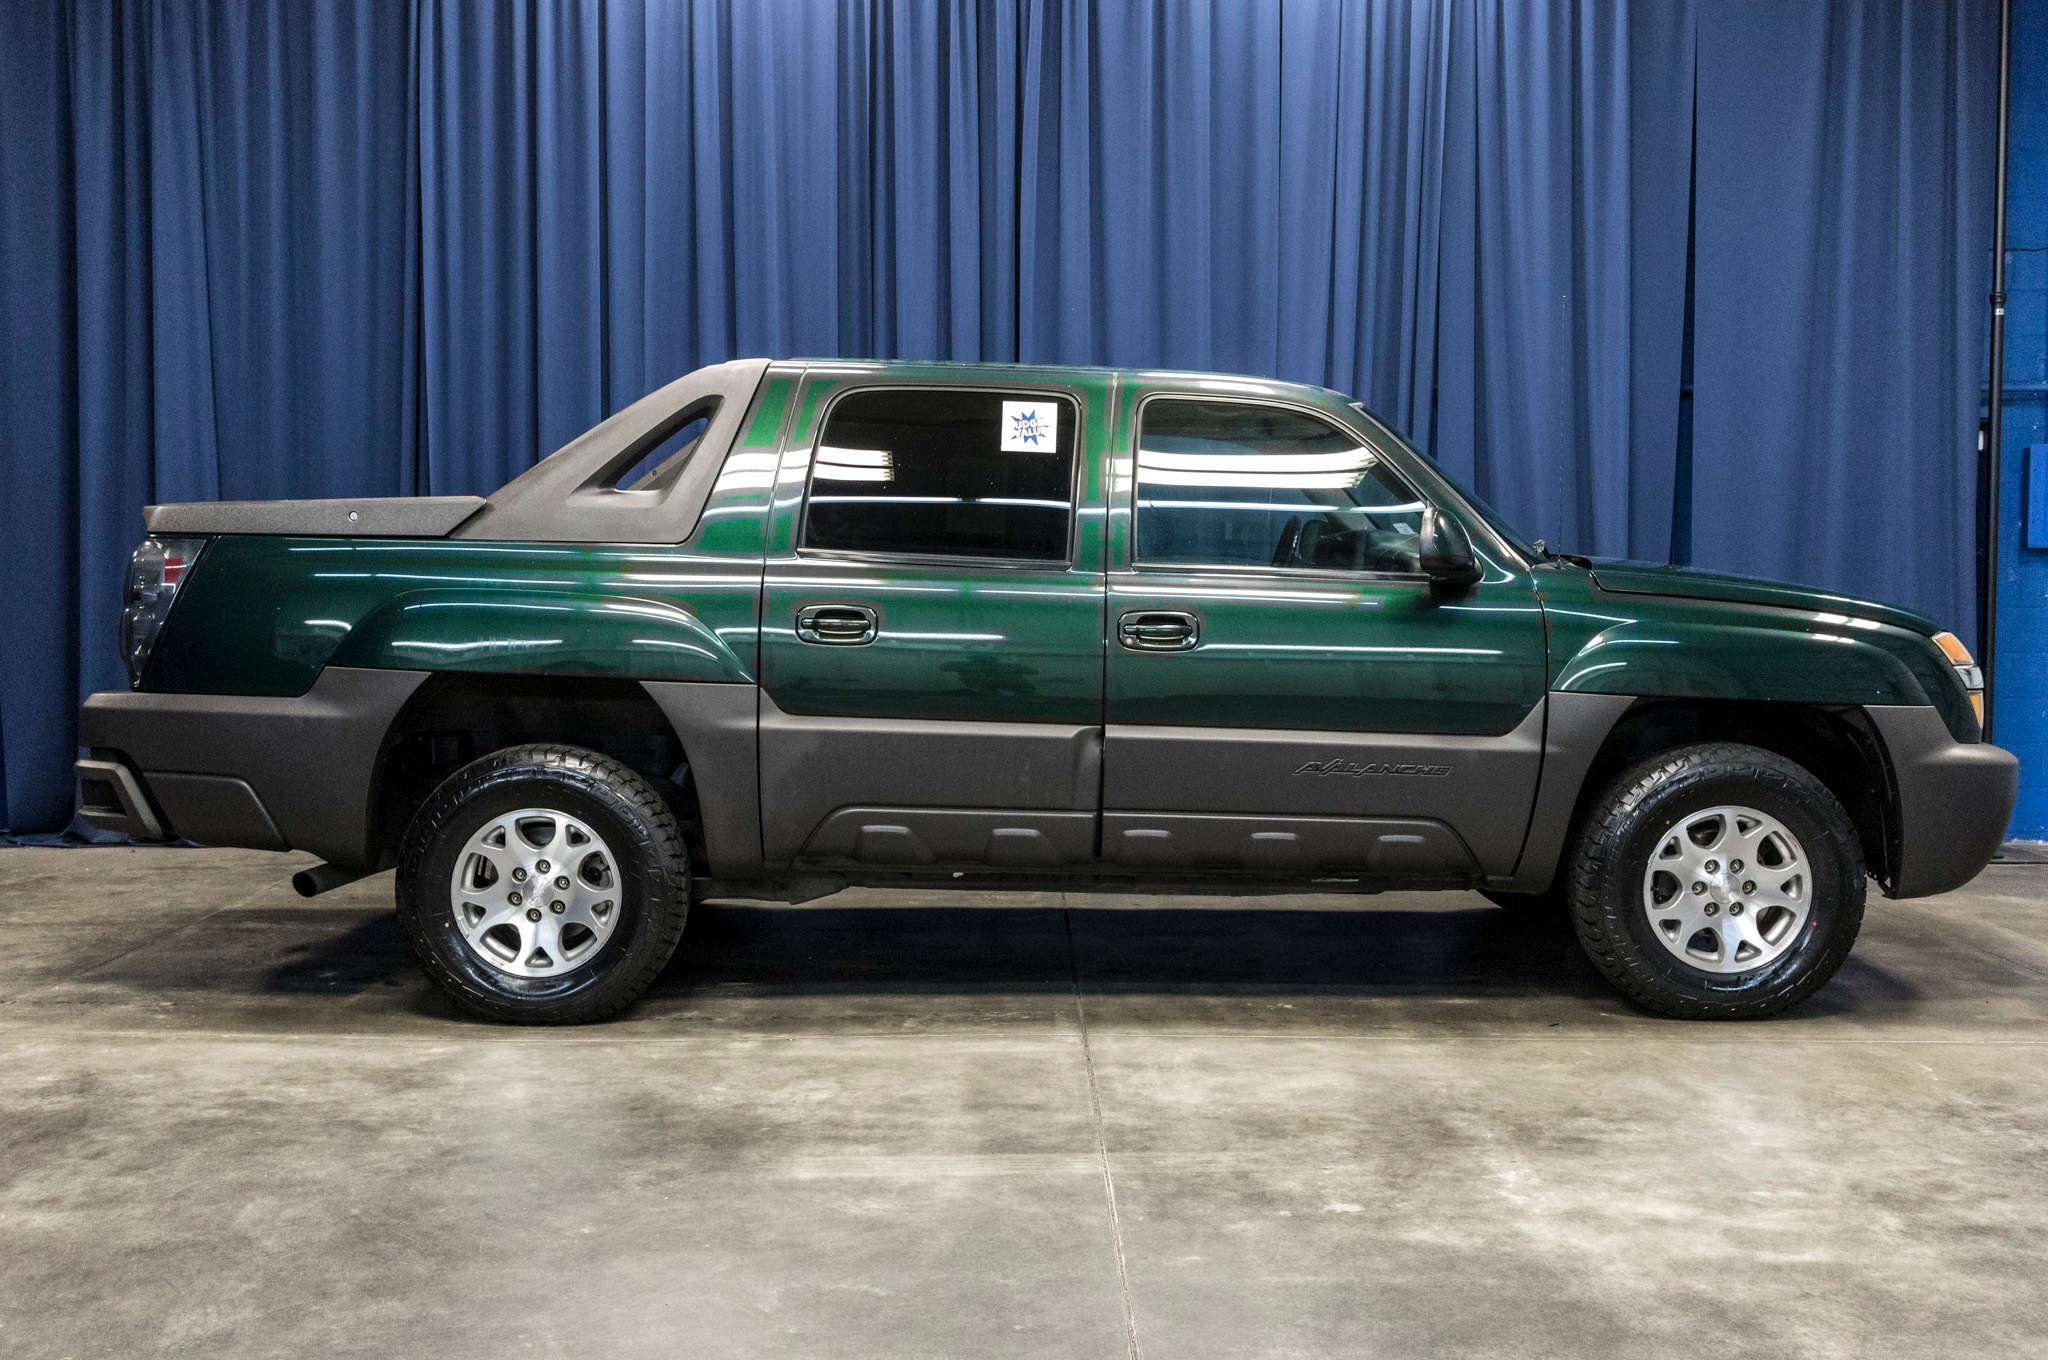 Chevrolet Avalanche For Sale >> Used 2003 Chevrolet Avalanche 1500 North Face Z71 4x4 ...